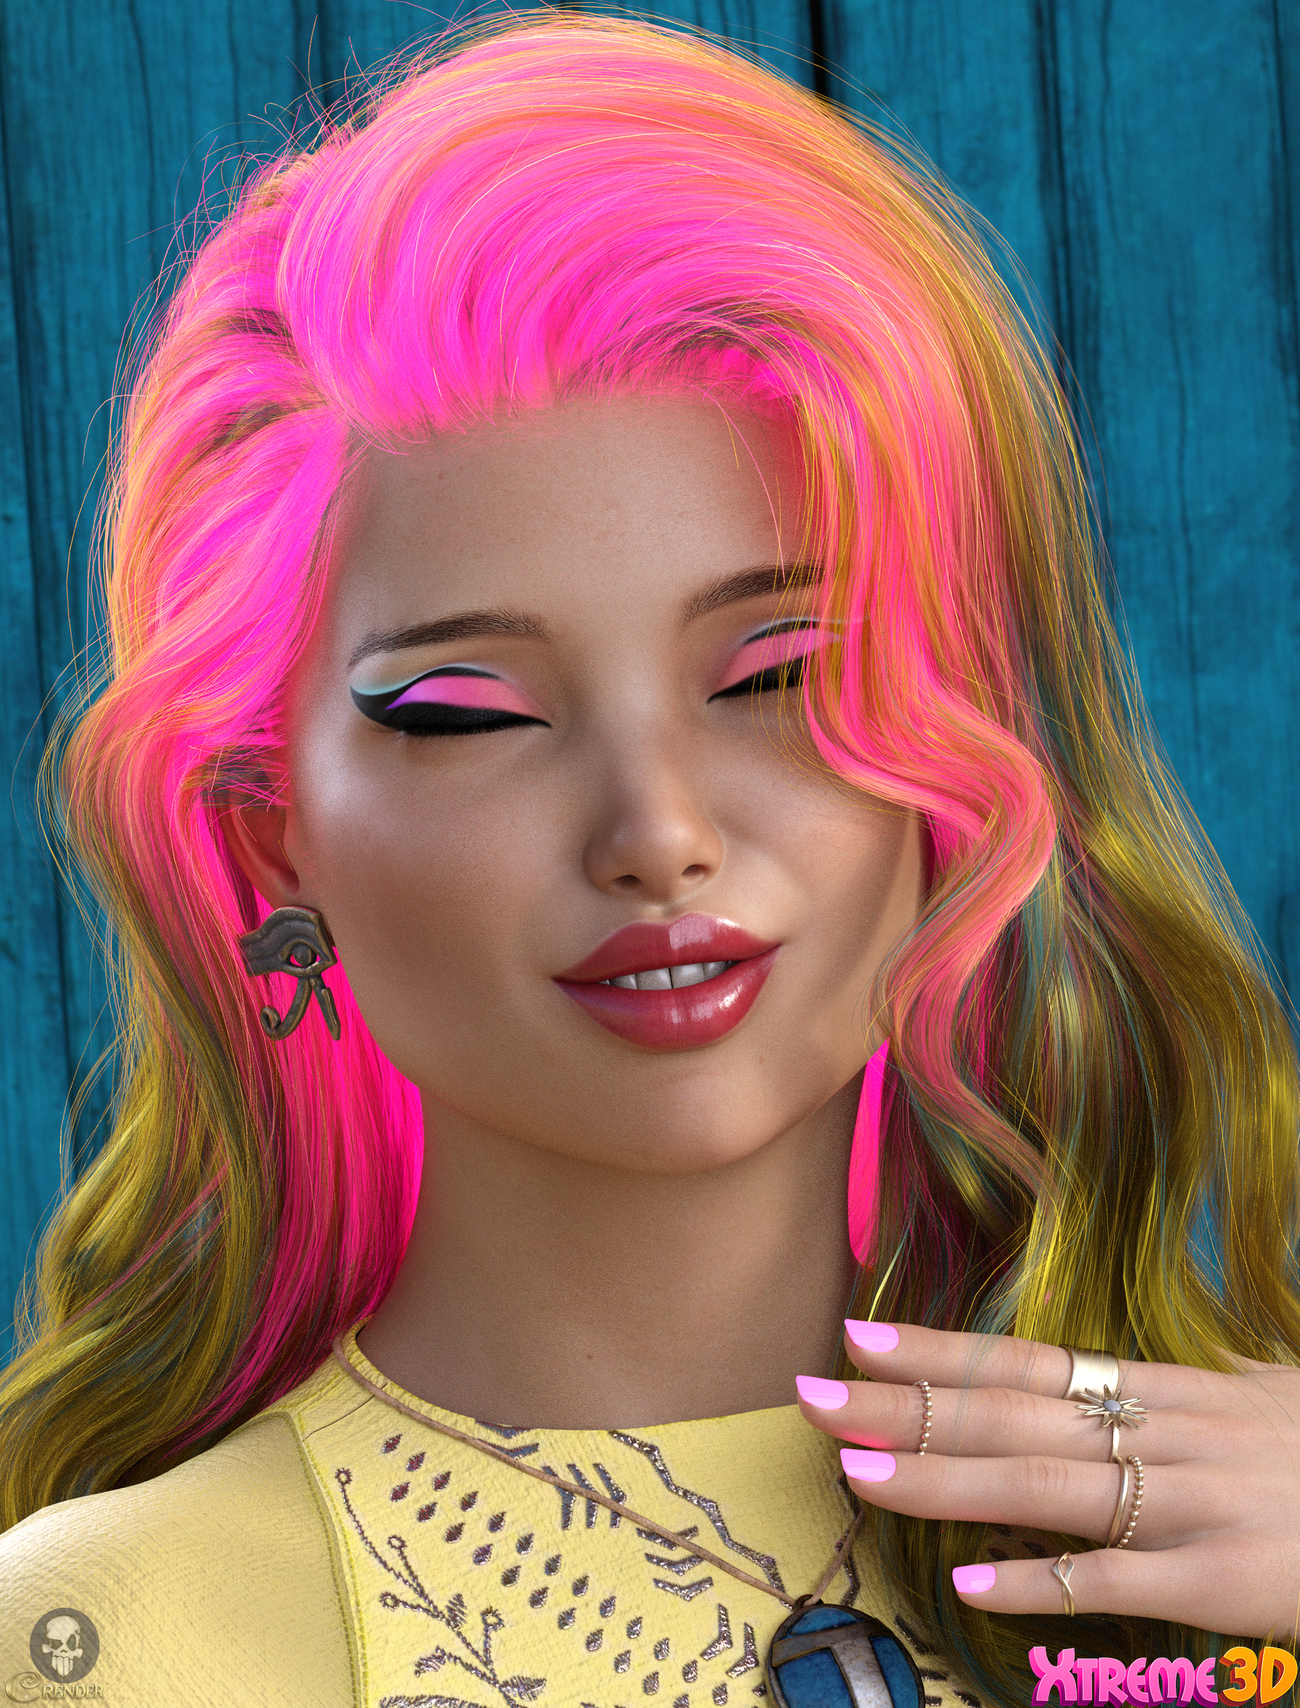 Twizted Complete Iray Hair Shaders by TwiztedMetal by crender